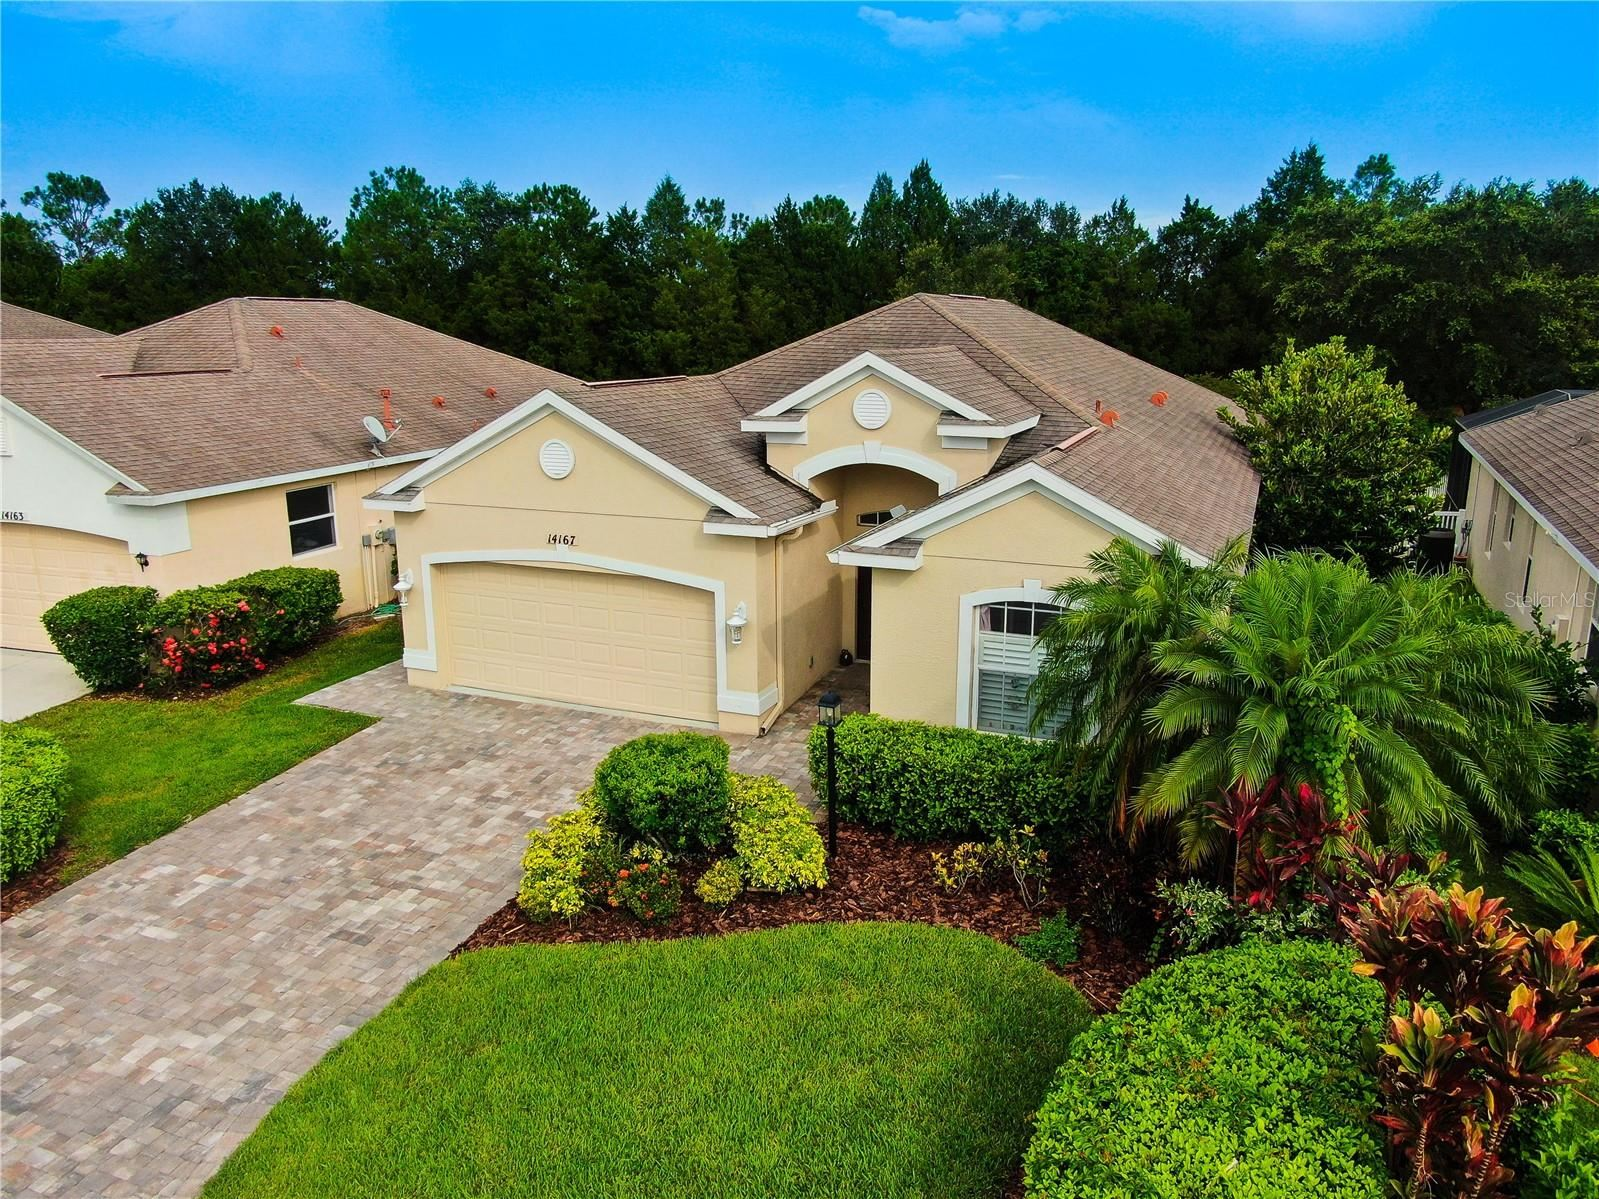 Photo for 14167 CATTLE EGRET PLACE, LAKEWOOD RANCH, FL 34202 (MLS # A4508179)